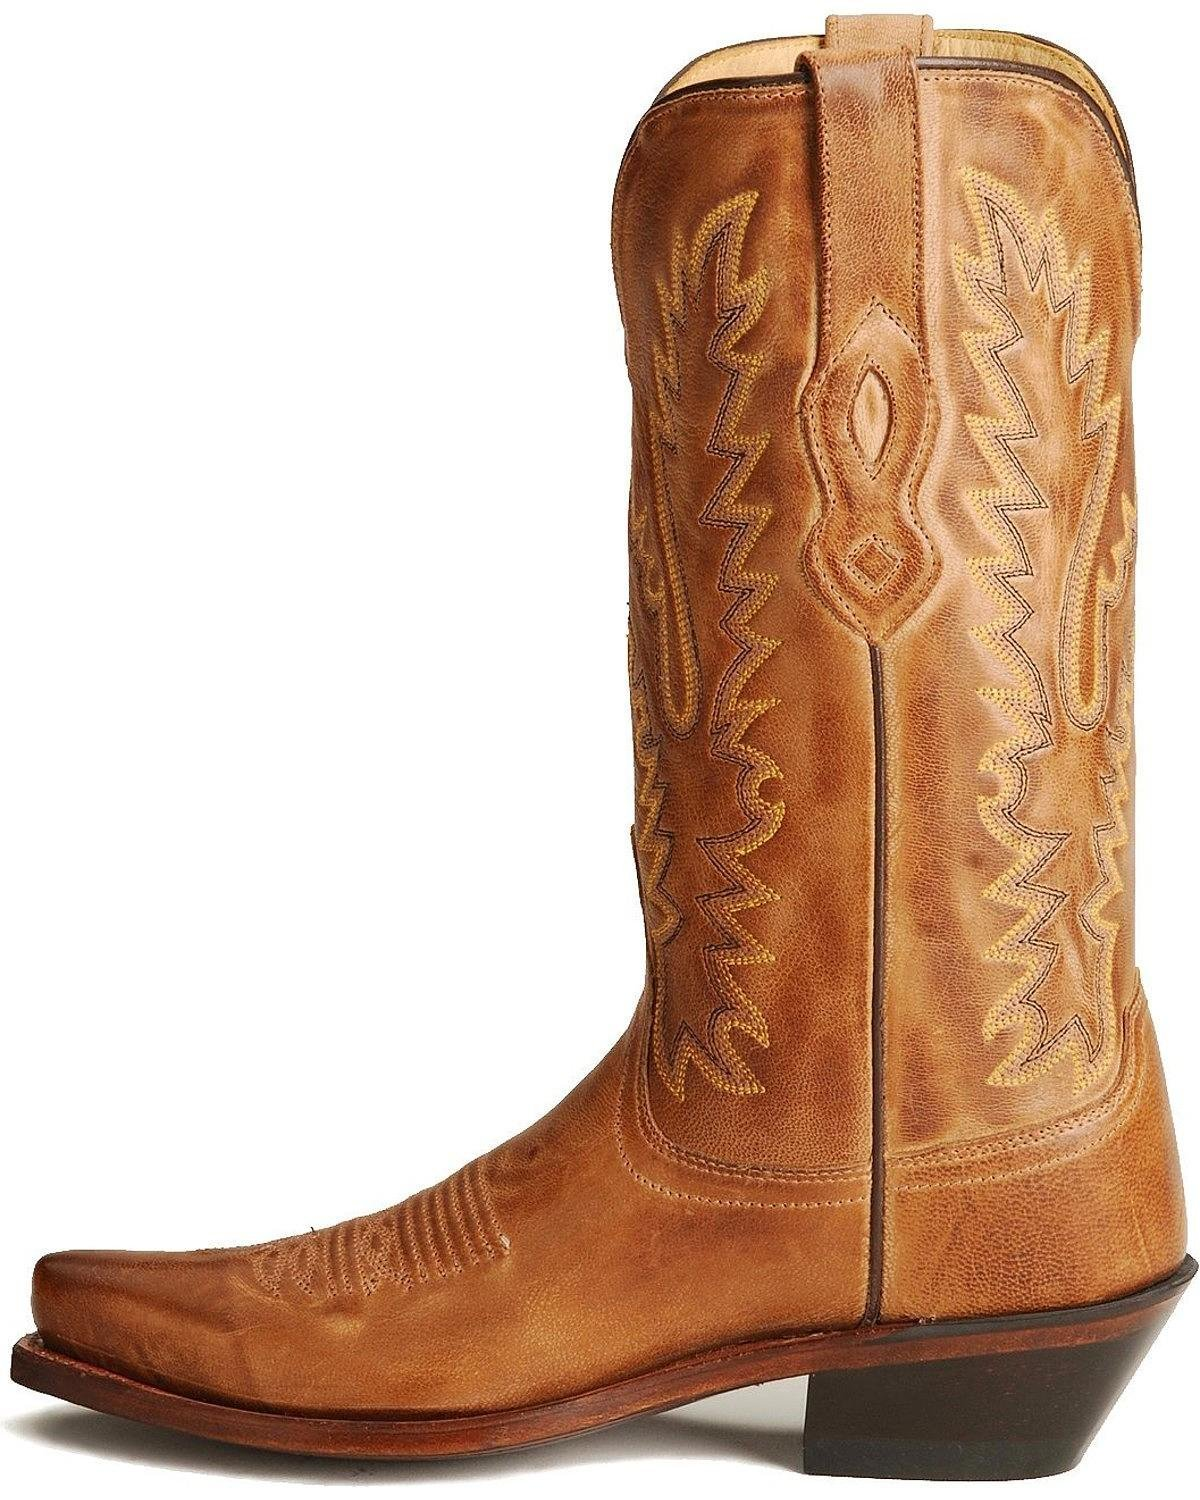 Old West Ladies Leather M Fashion Cowgirl Boots B005OO263G 8 M Leather US|Tan fe8fc7